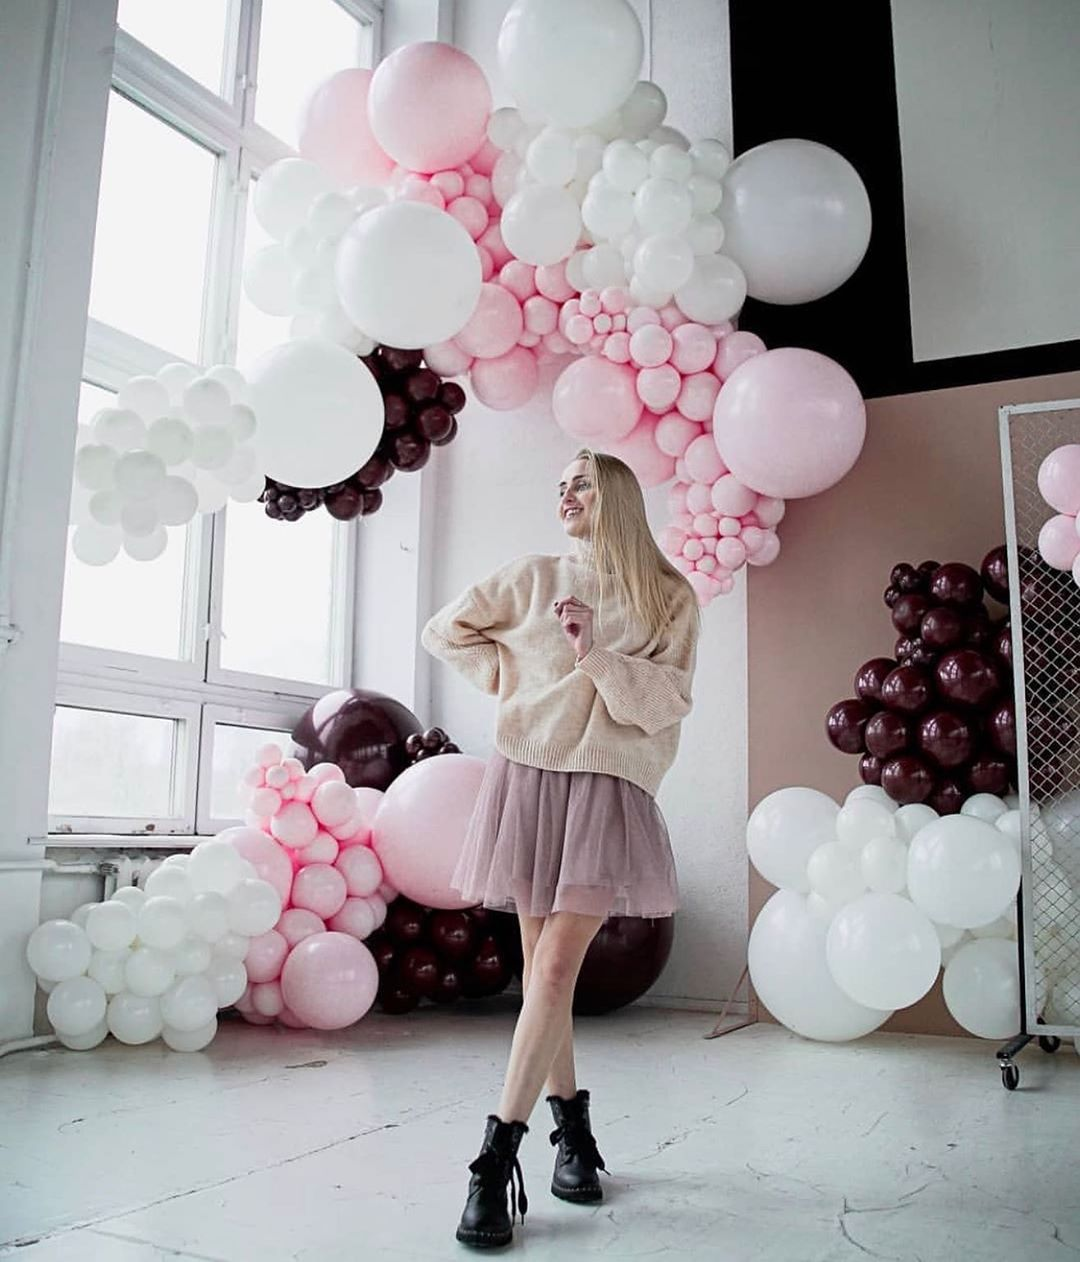 mas-de-40-ideas-unicas-de-decoracion-de-globos-para-baby-shower-ideas-de-decoracion-nuevo-2020